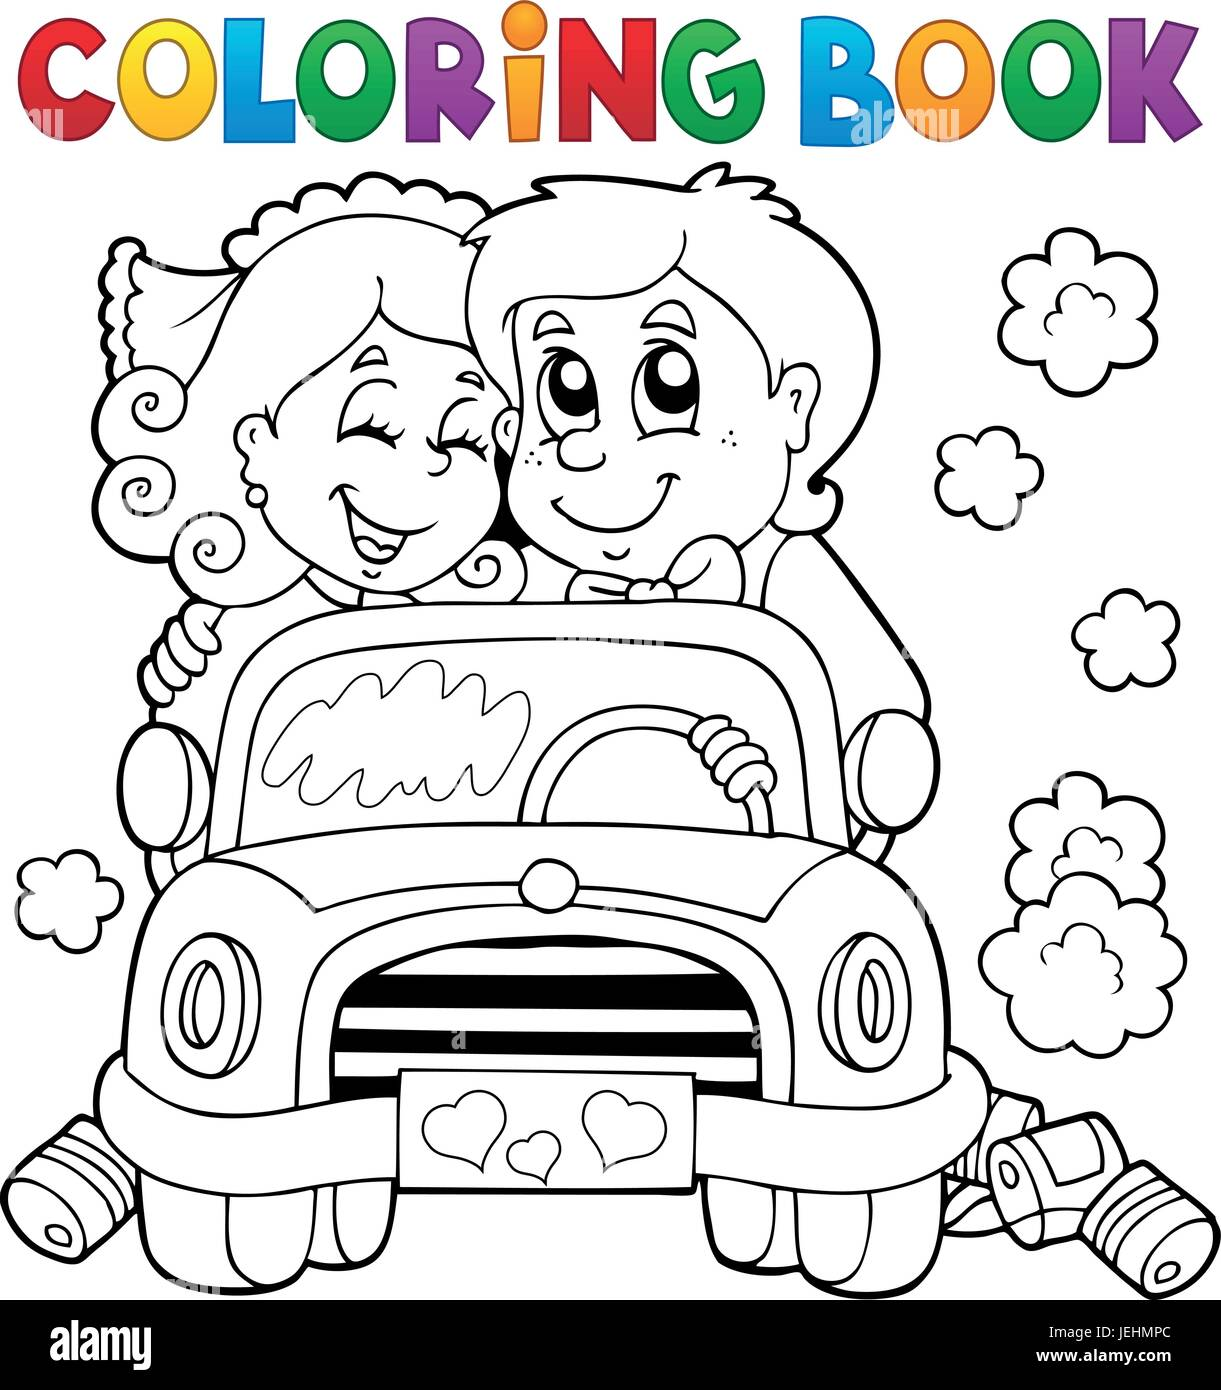 Coloring book wedding pictures - Coloring Book Wedding Car Eps10 Vector Illustration